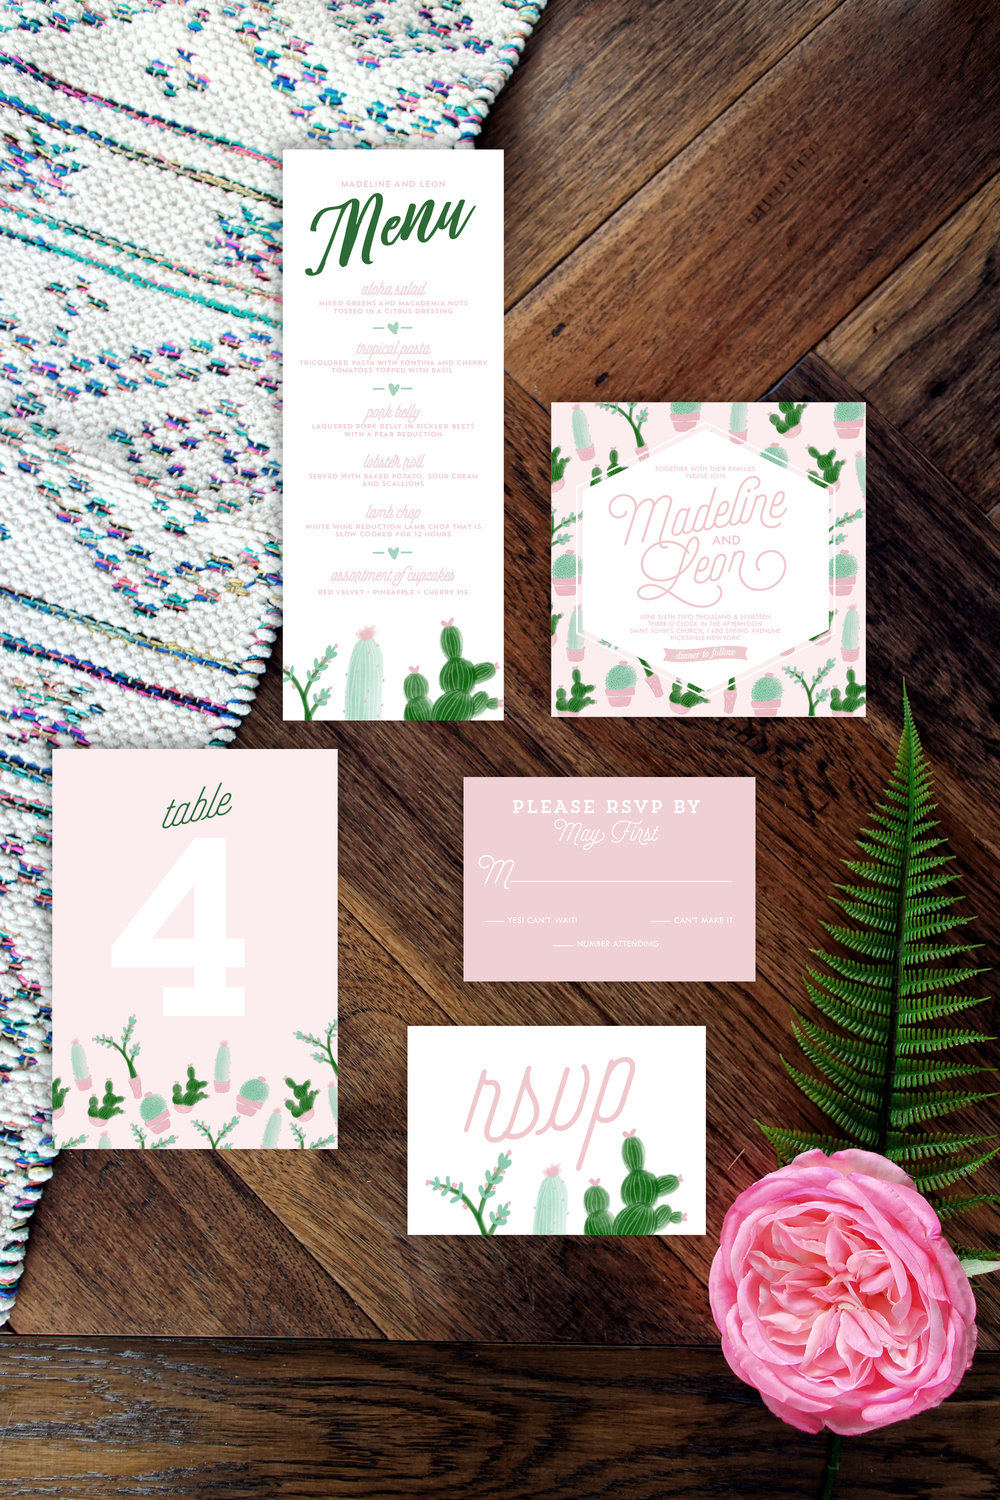 Cactus Succulent Invites and Party Decor by Yellow Heart Art.jpg